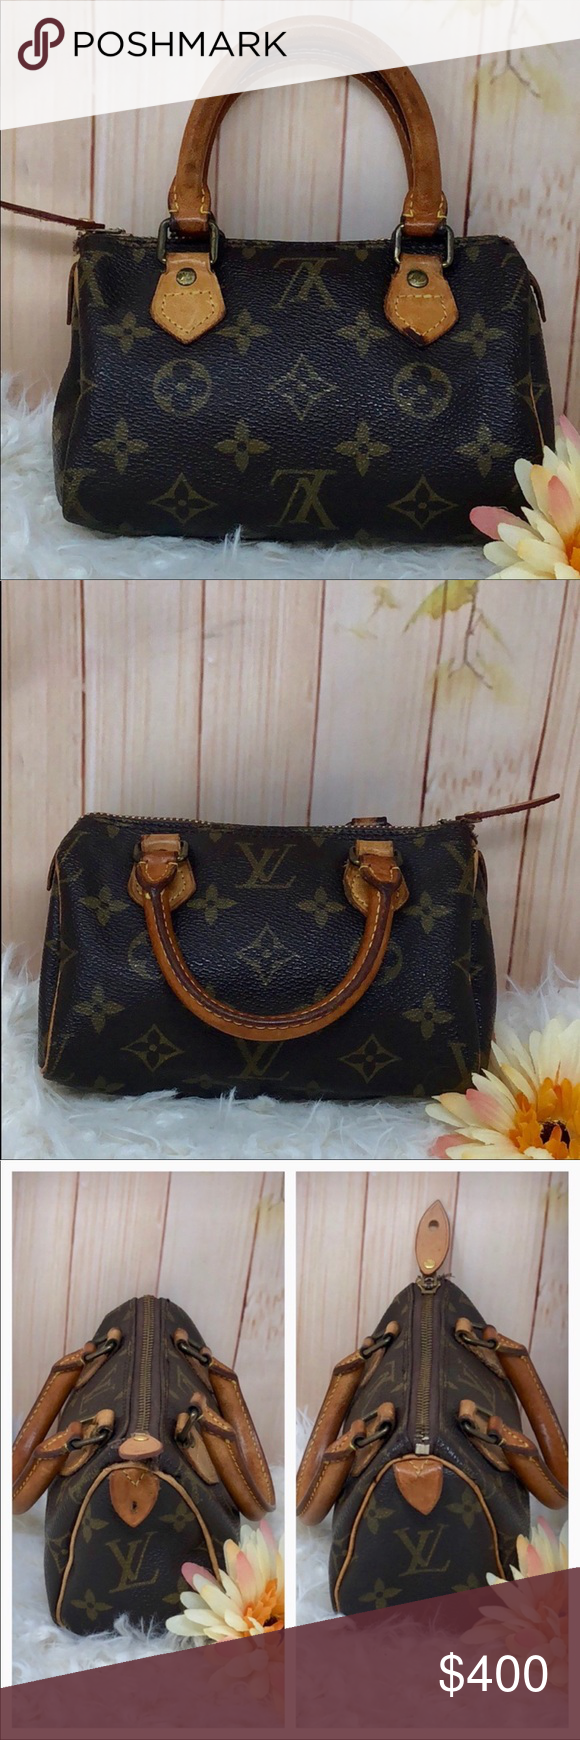 100 Authentic Mini Louis Vuitton Made In France Has No Date >> 100 Authentic Mini Louis Vuitton Made In France Has No